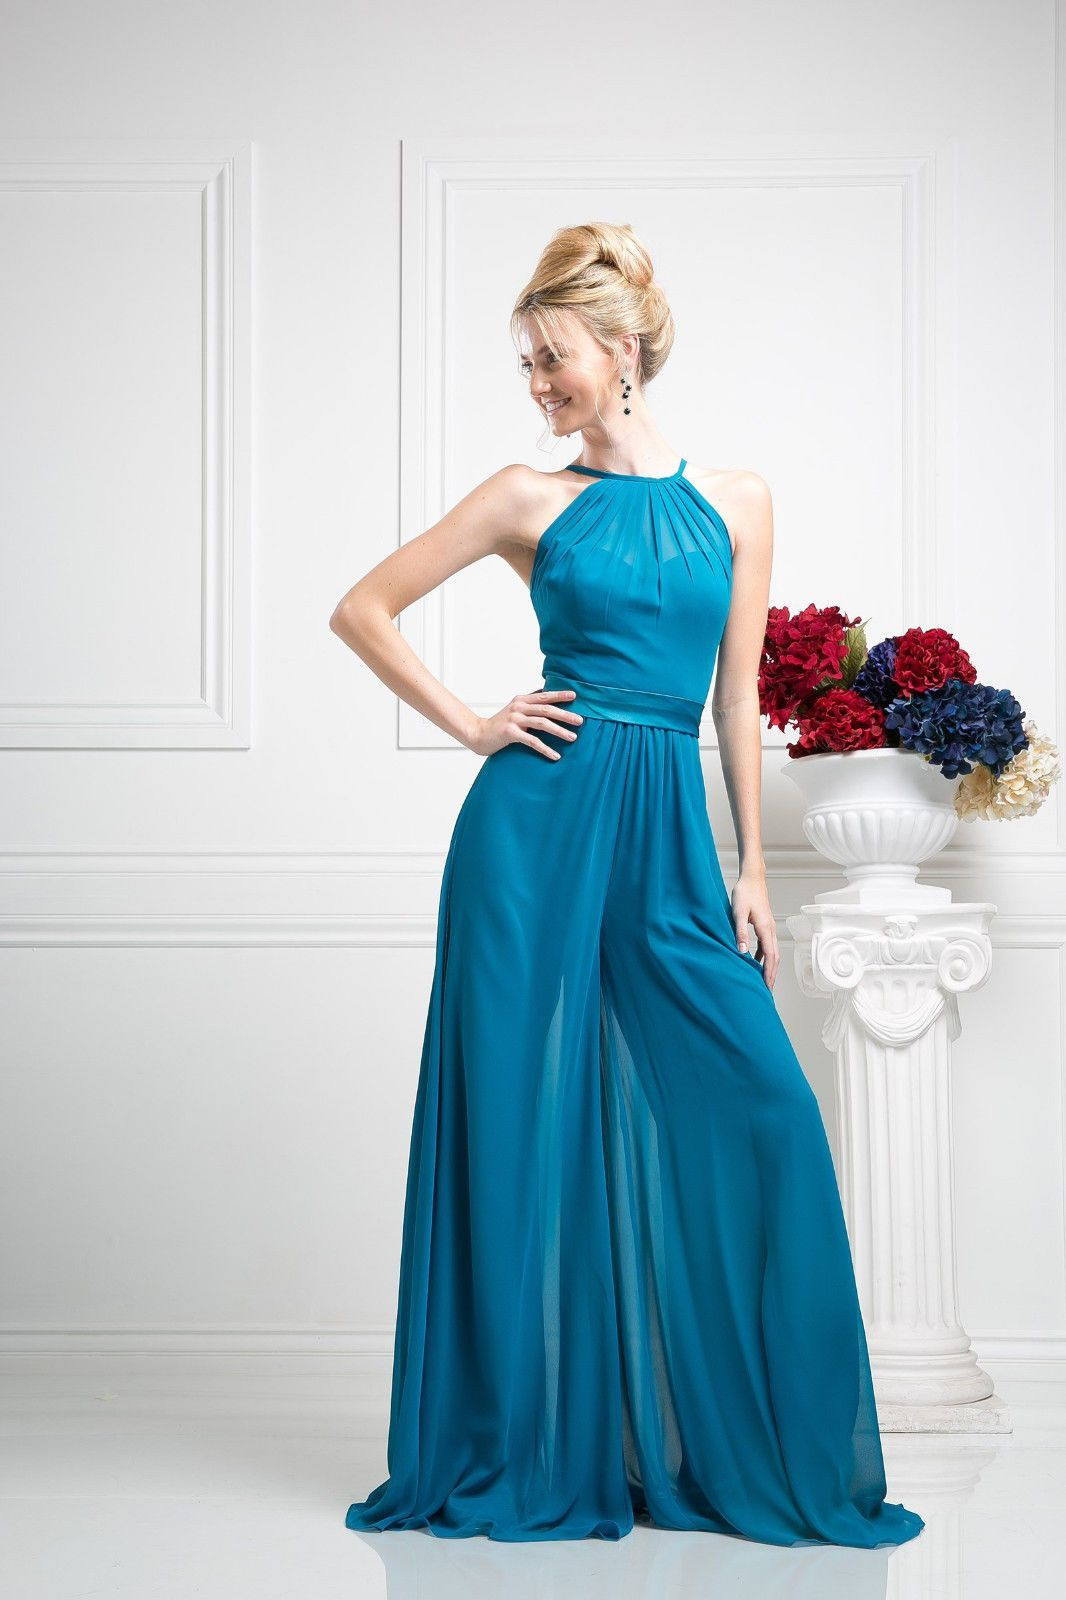 Formal Pants Suit Jumper Plus Size Prom Dress | Products | Pinterest ...